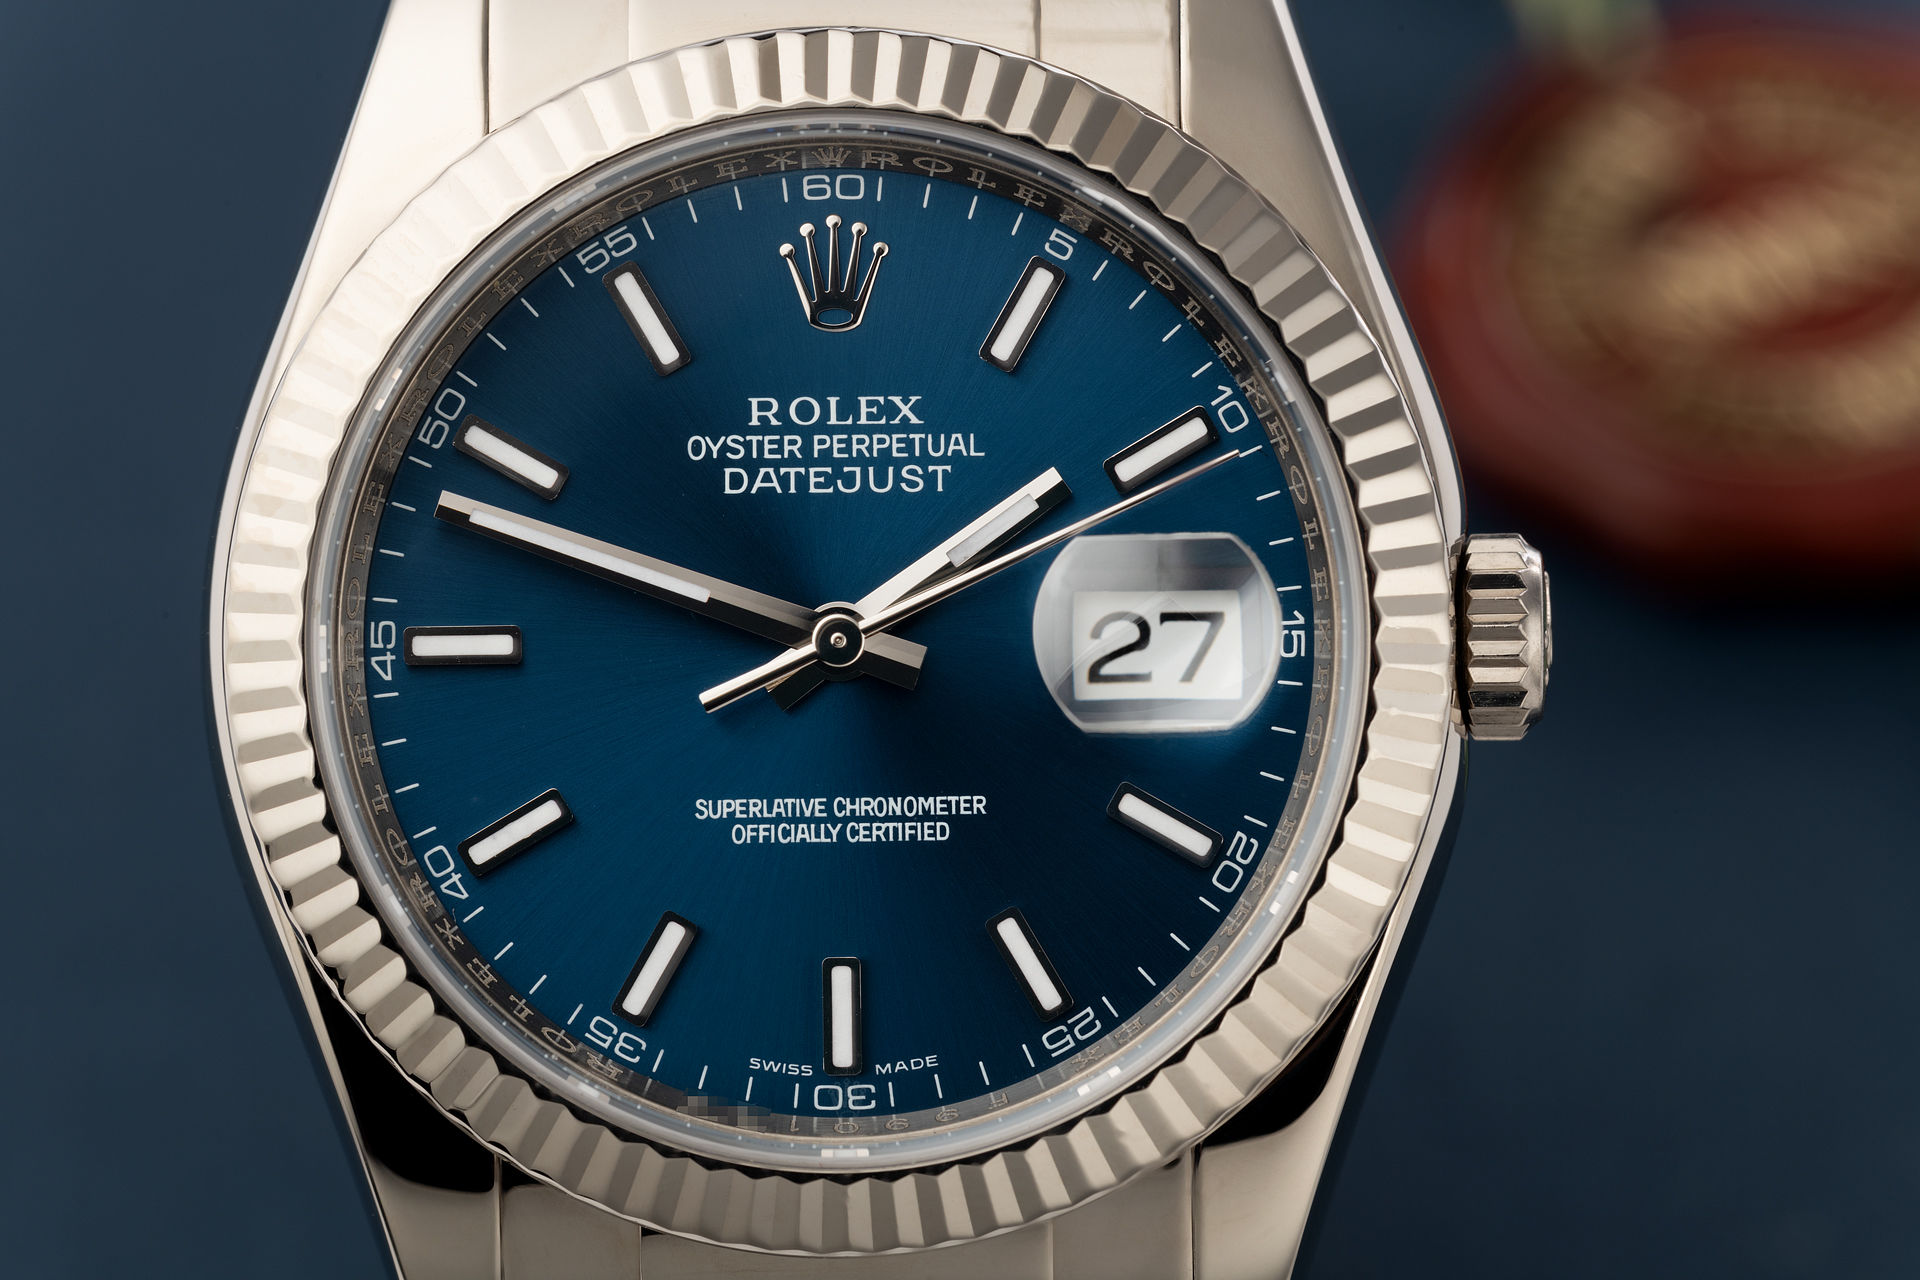 18ct White Gold | ref 116139 | Rolex Datejust